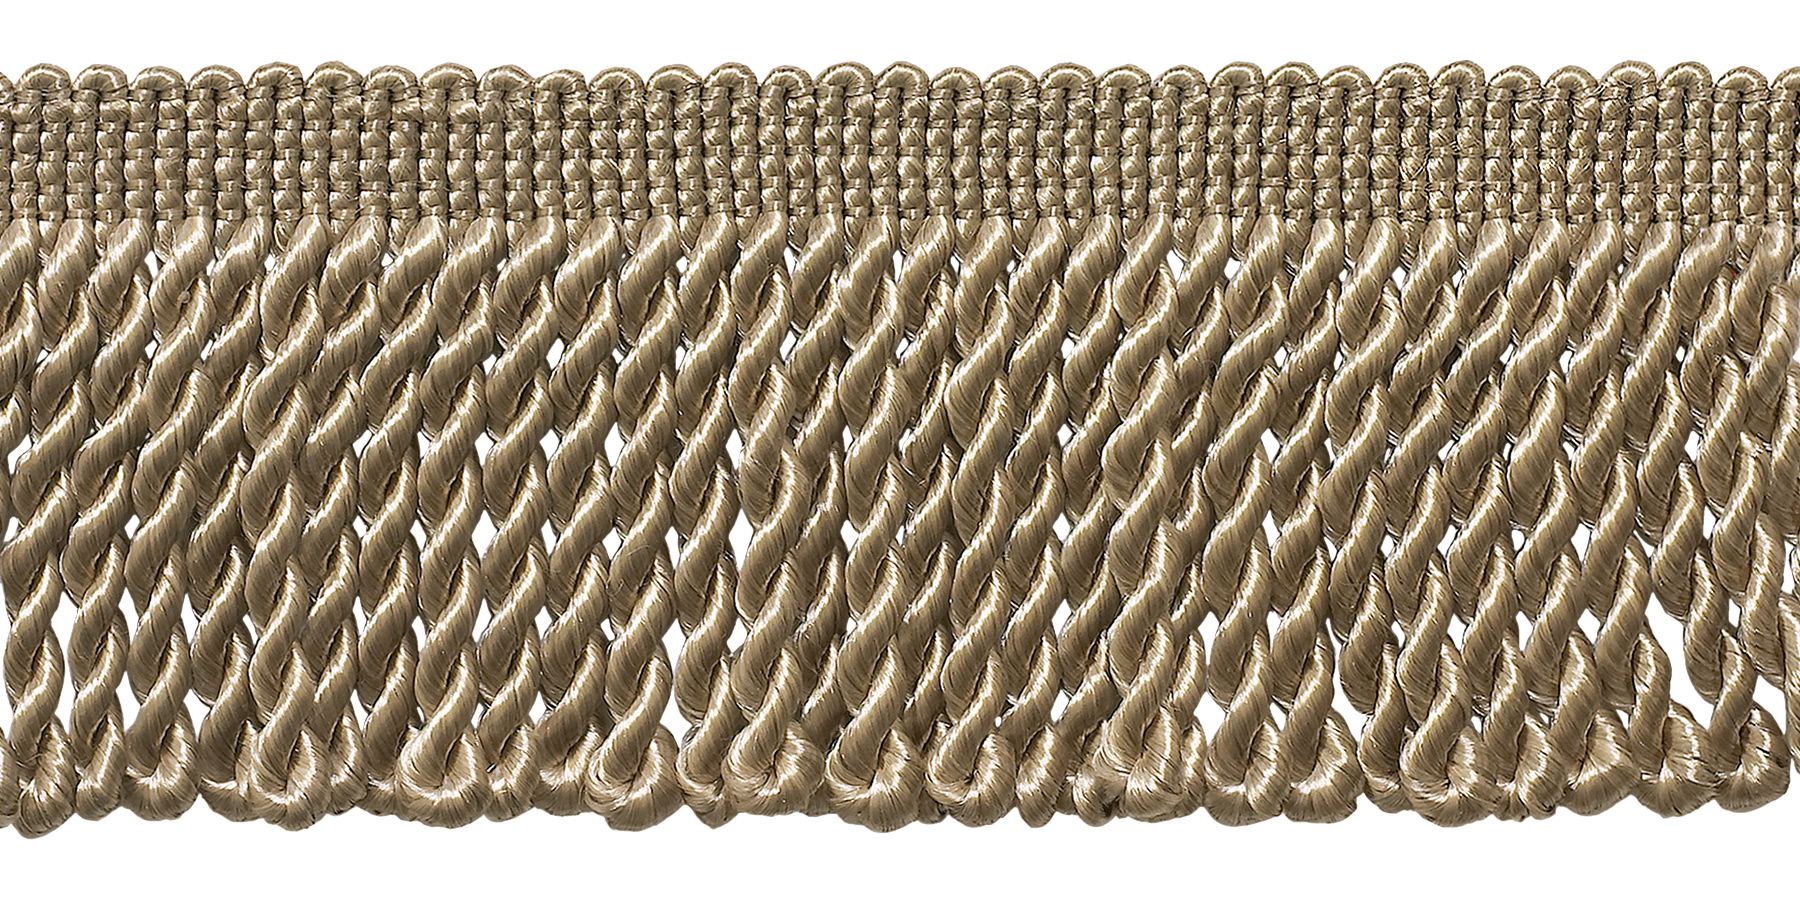 DecoPro 2.5 Inch Bullion Fringe Trim, Style# EF25 Color: SANDSTONE - A10, Sold By the Yard at Sears.com